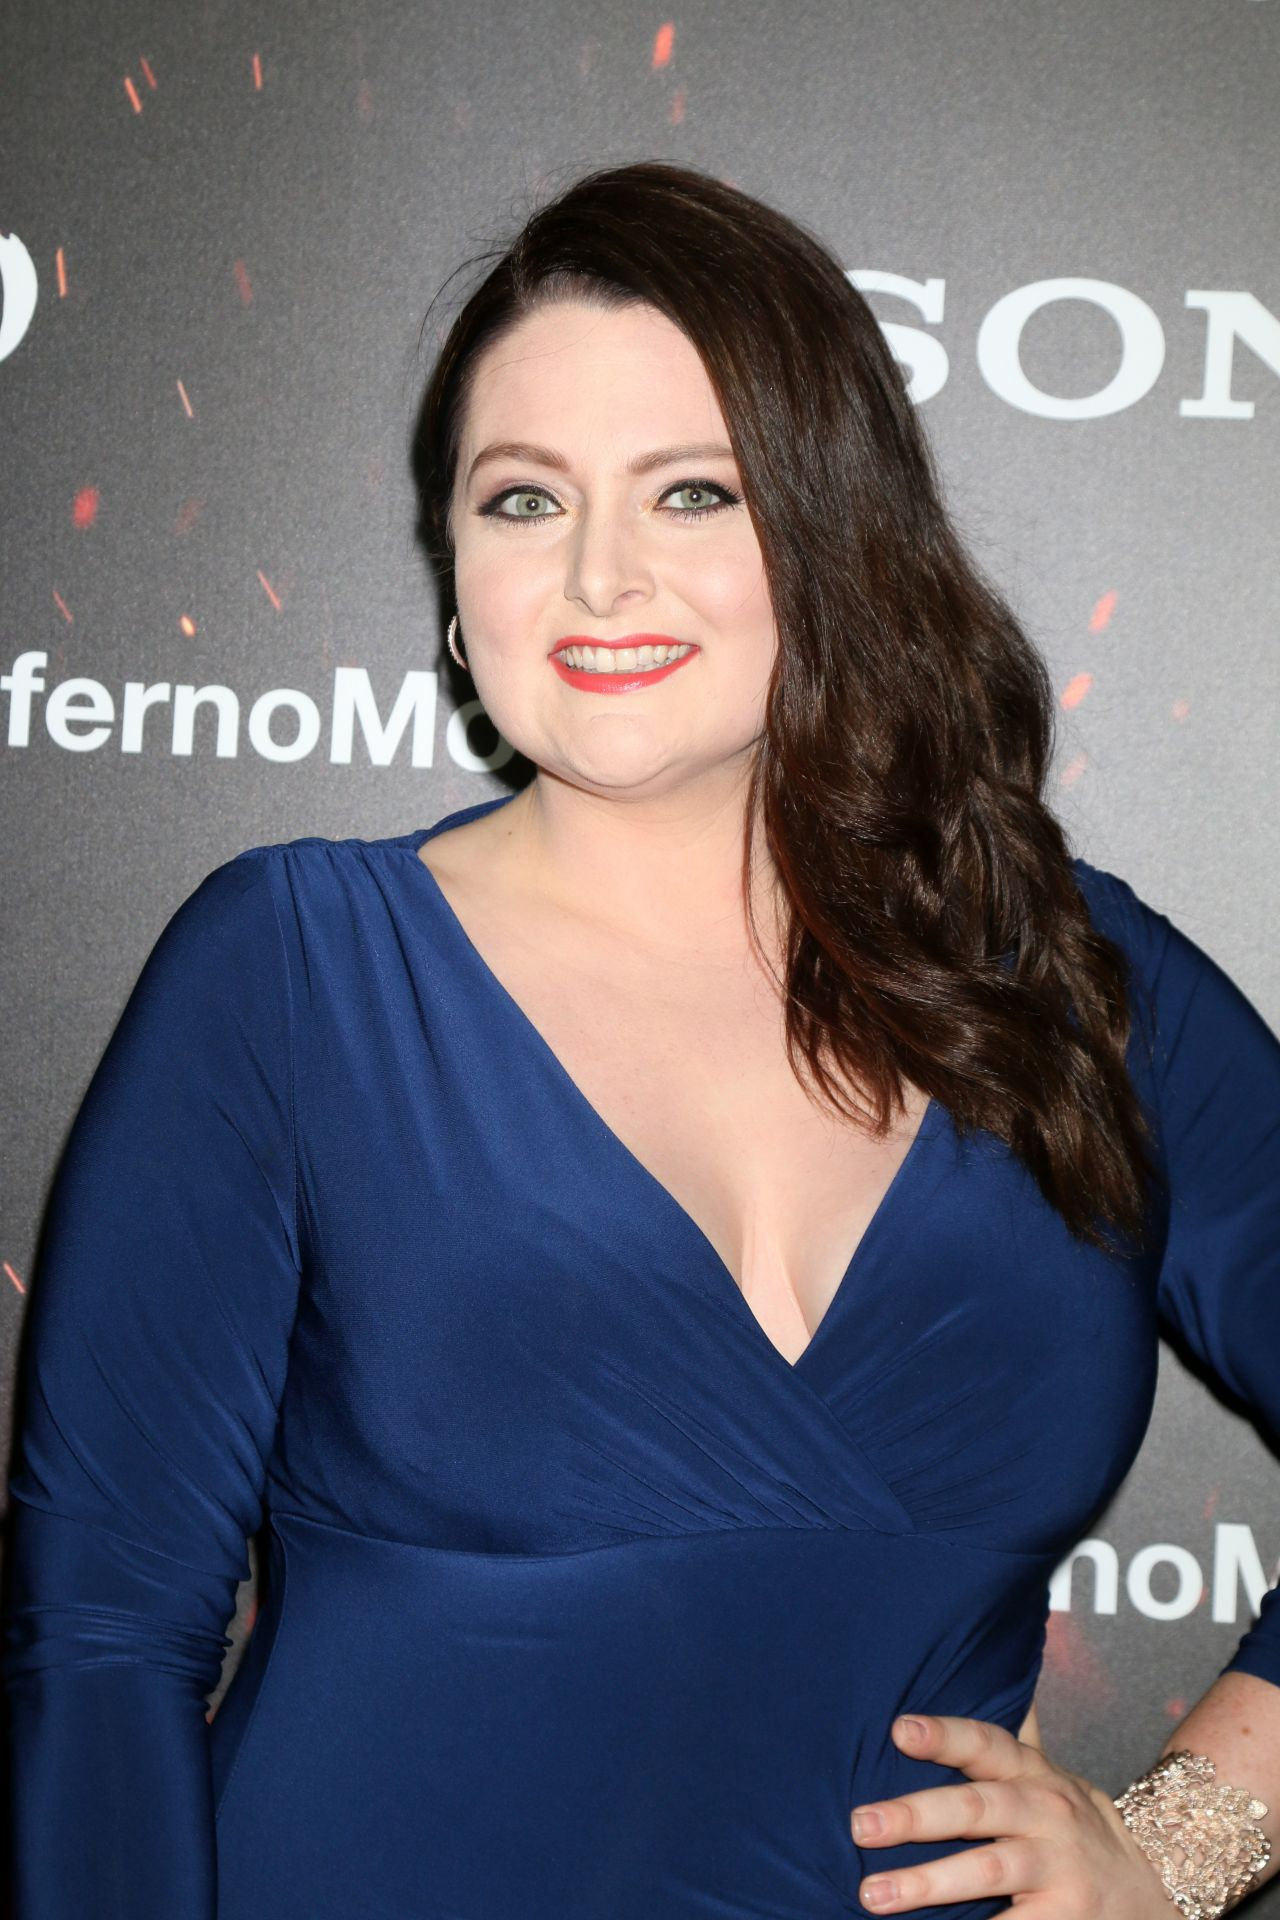 Lauren Ash's Armpit-Sniffing Date From Hell @ TeamCoco.com